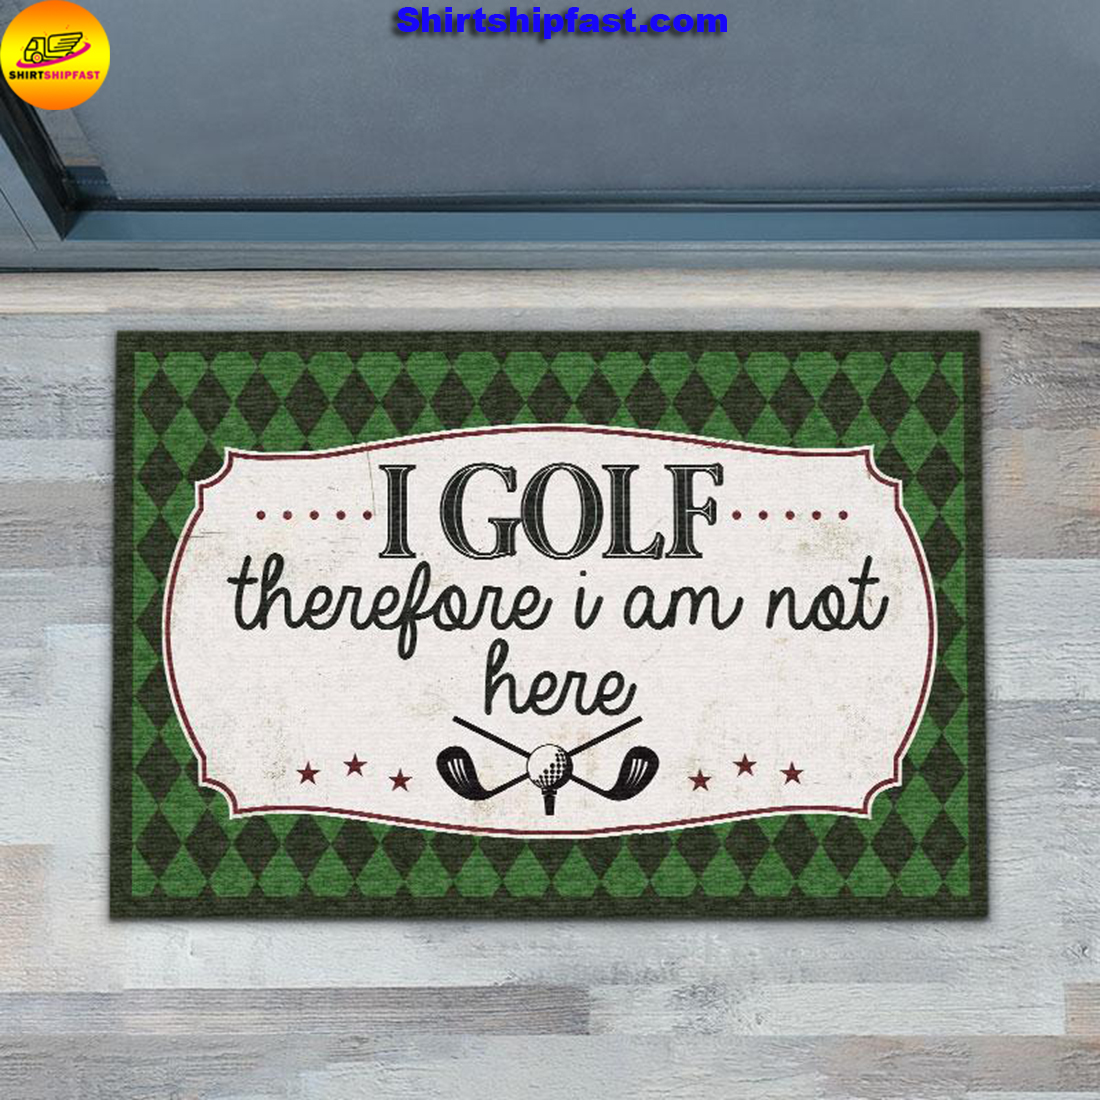 I golf therefore I am not here doormat - Picture 3